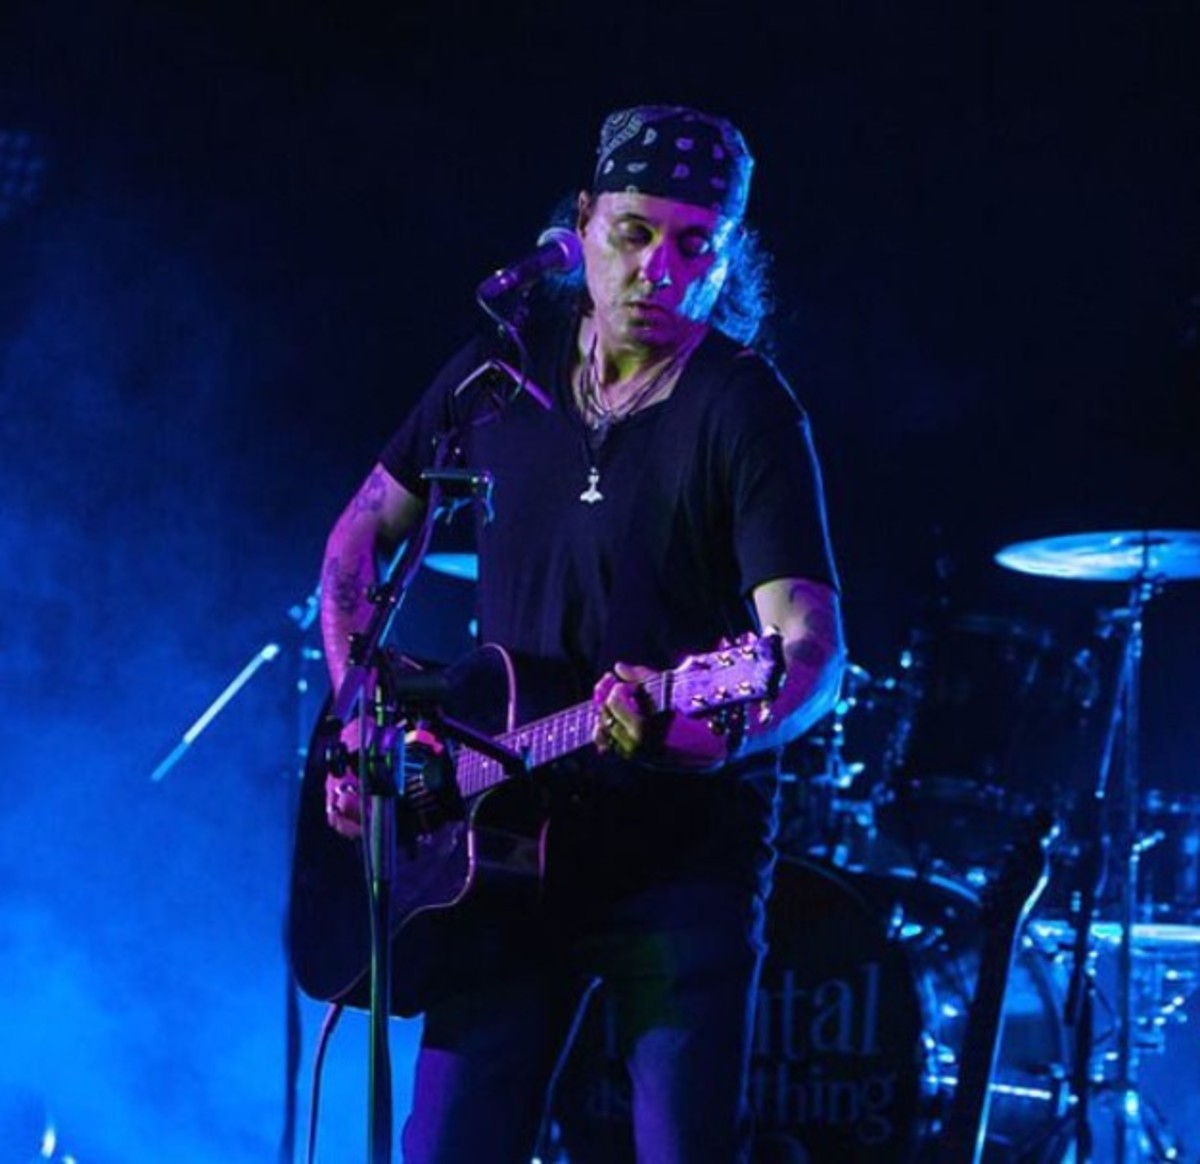 Live in Melbourne, Australia, photo by Ros O'Gorman, courtesy of joematera.com